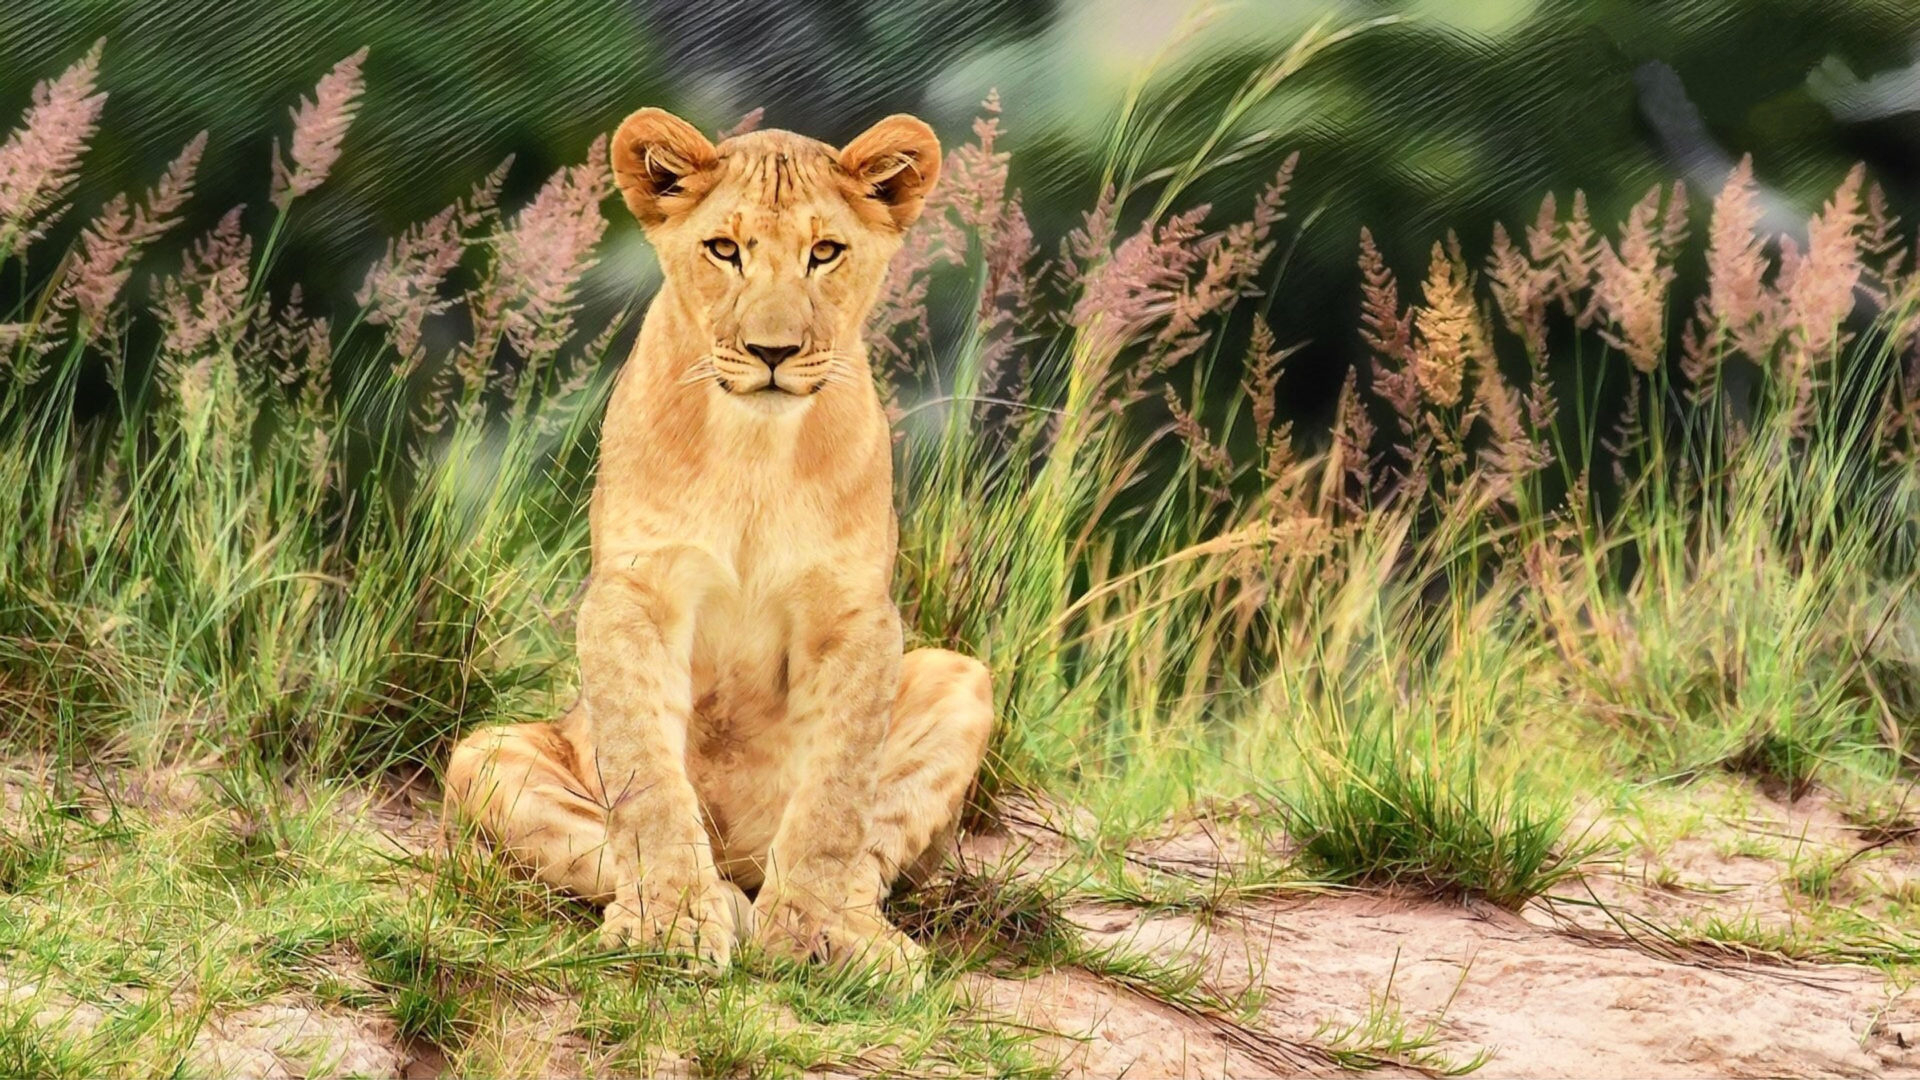 wild animal young male lion 4k ultra hd tv wallpaper for desktop laptop tablet and mobile phones 3840x2160